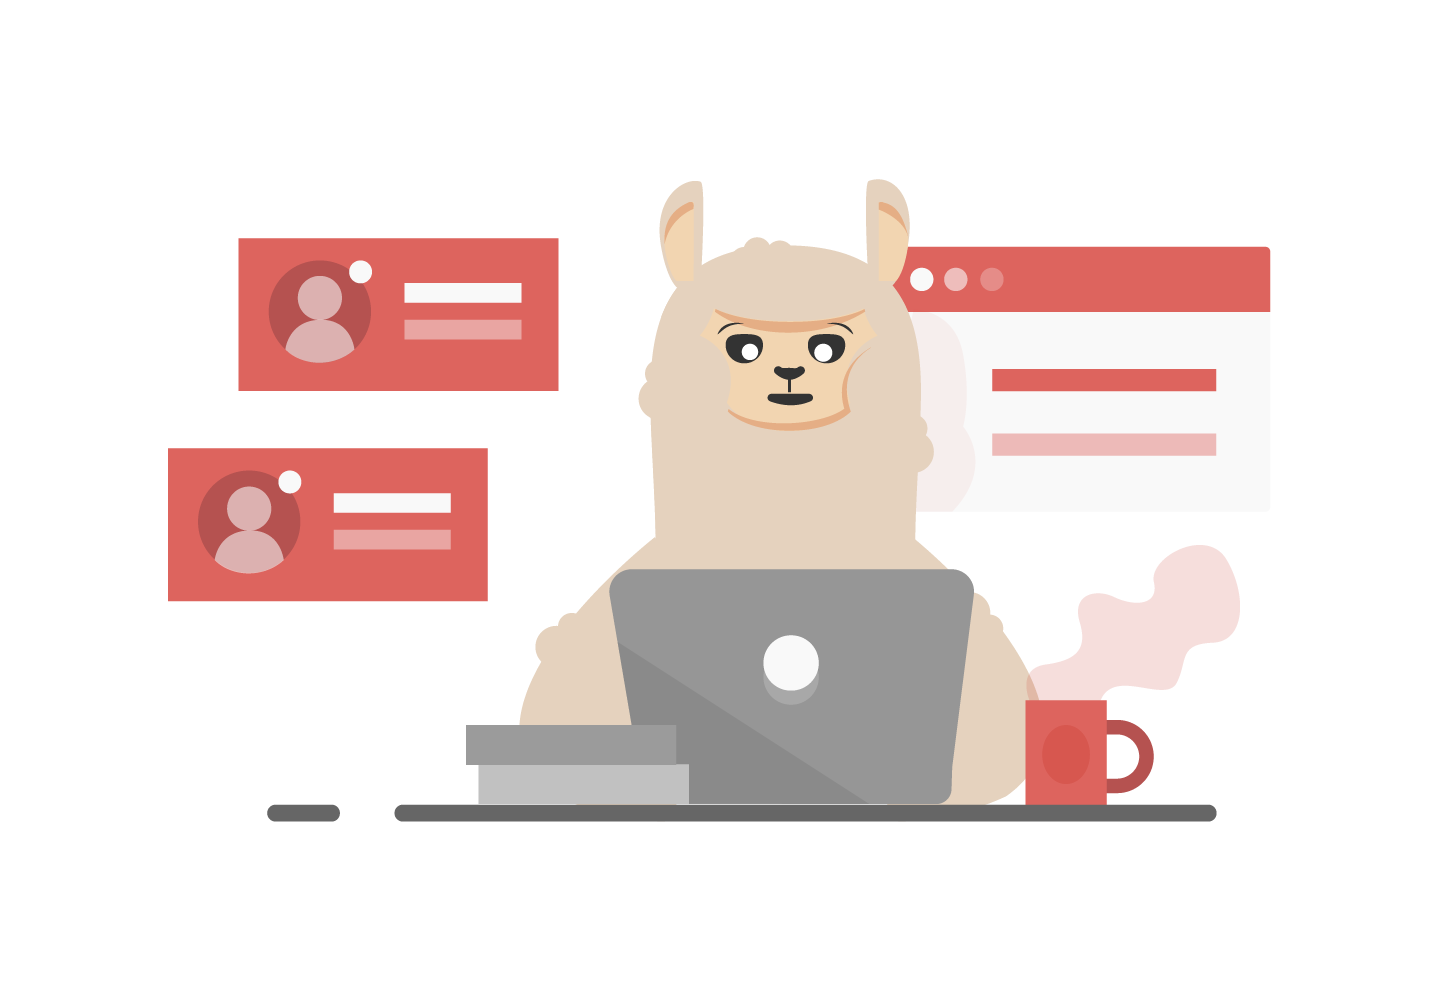 Dino the alpaca helps online businesses hire remote talent